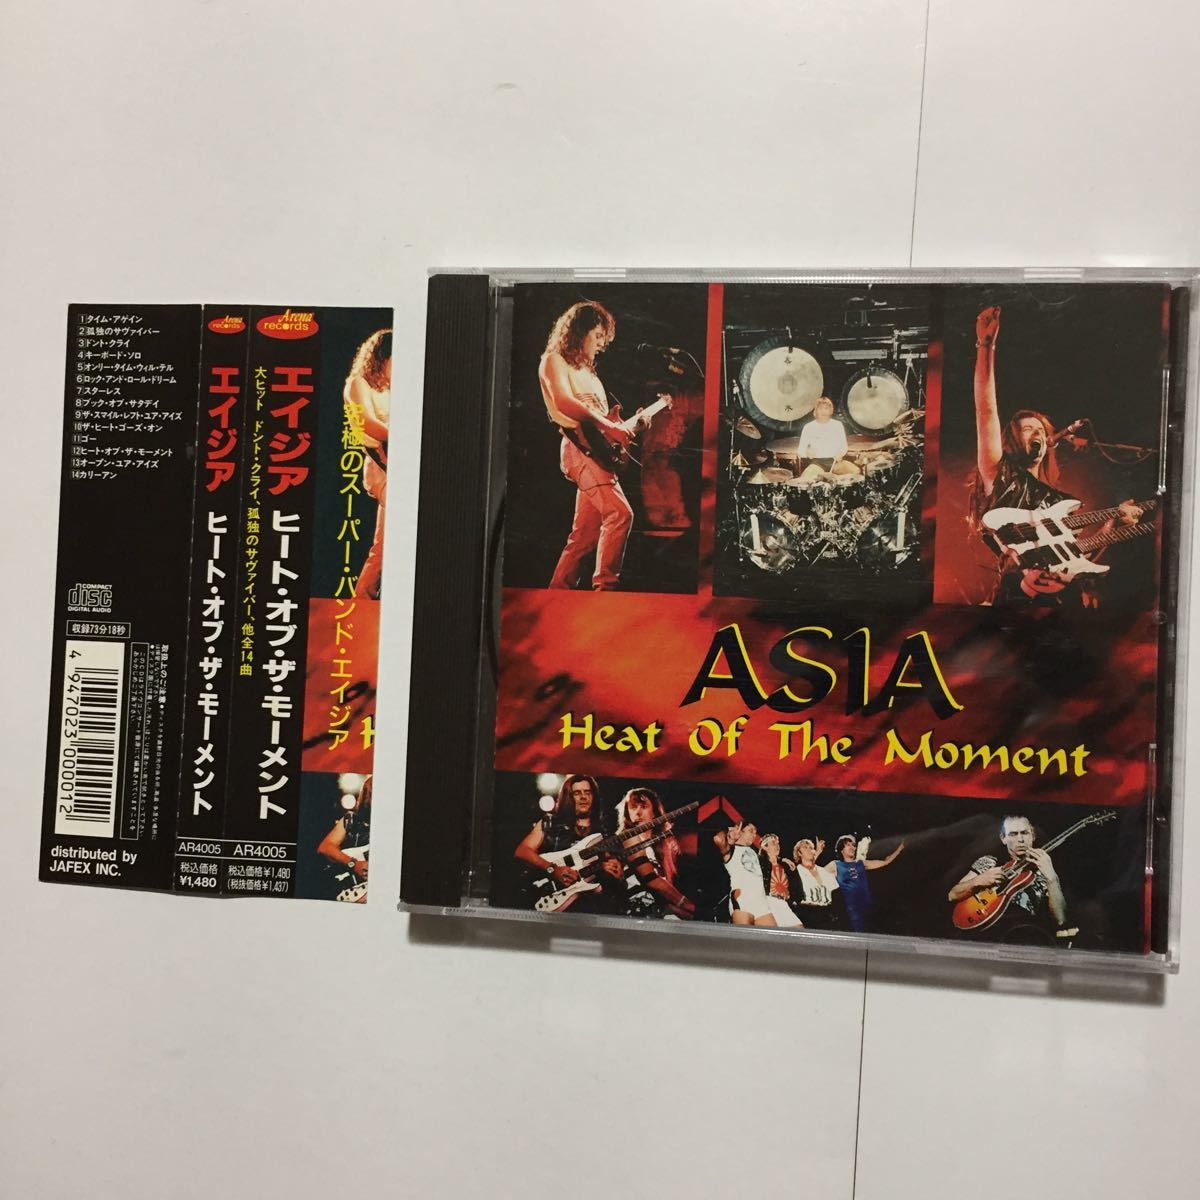 ASIA エイジア Hrat Of The Moment LIVE ライヴ Arena Records Don't Cry 並行輸入盤 全14曲収録 John Wetton Geoff Downes